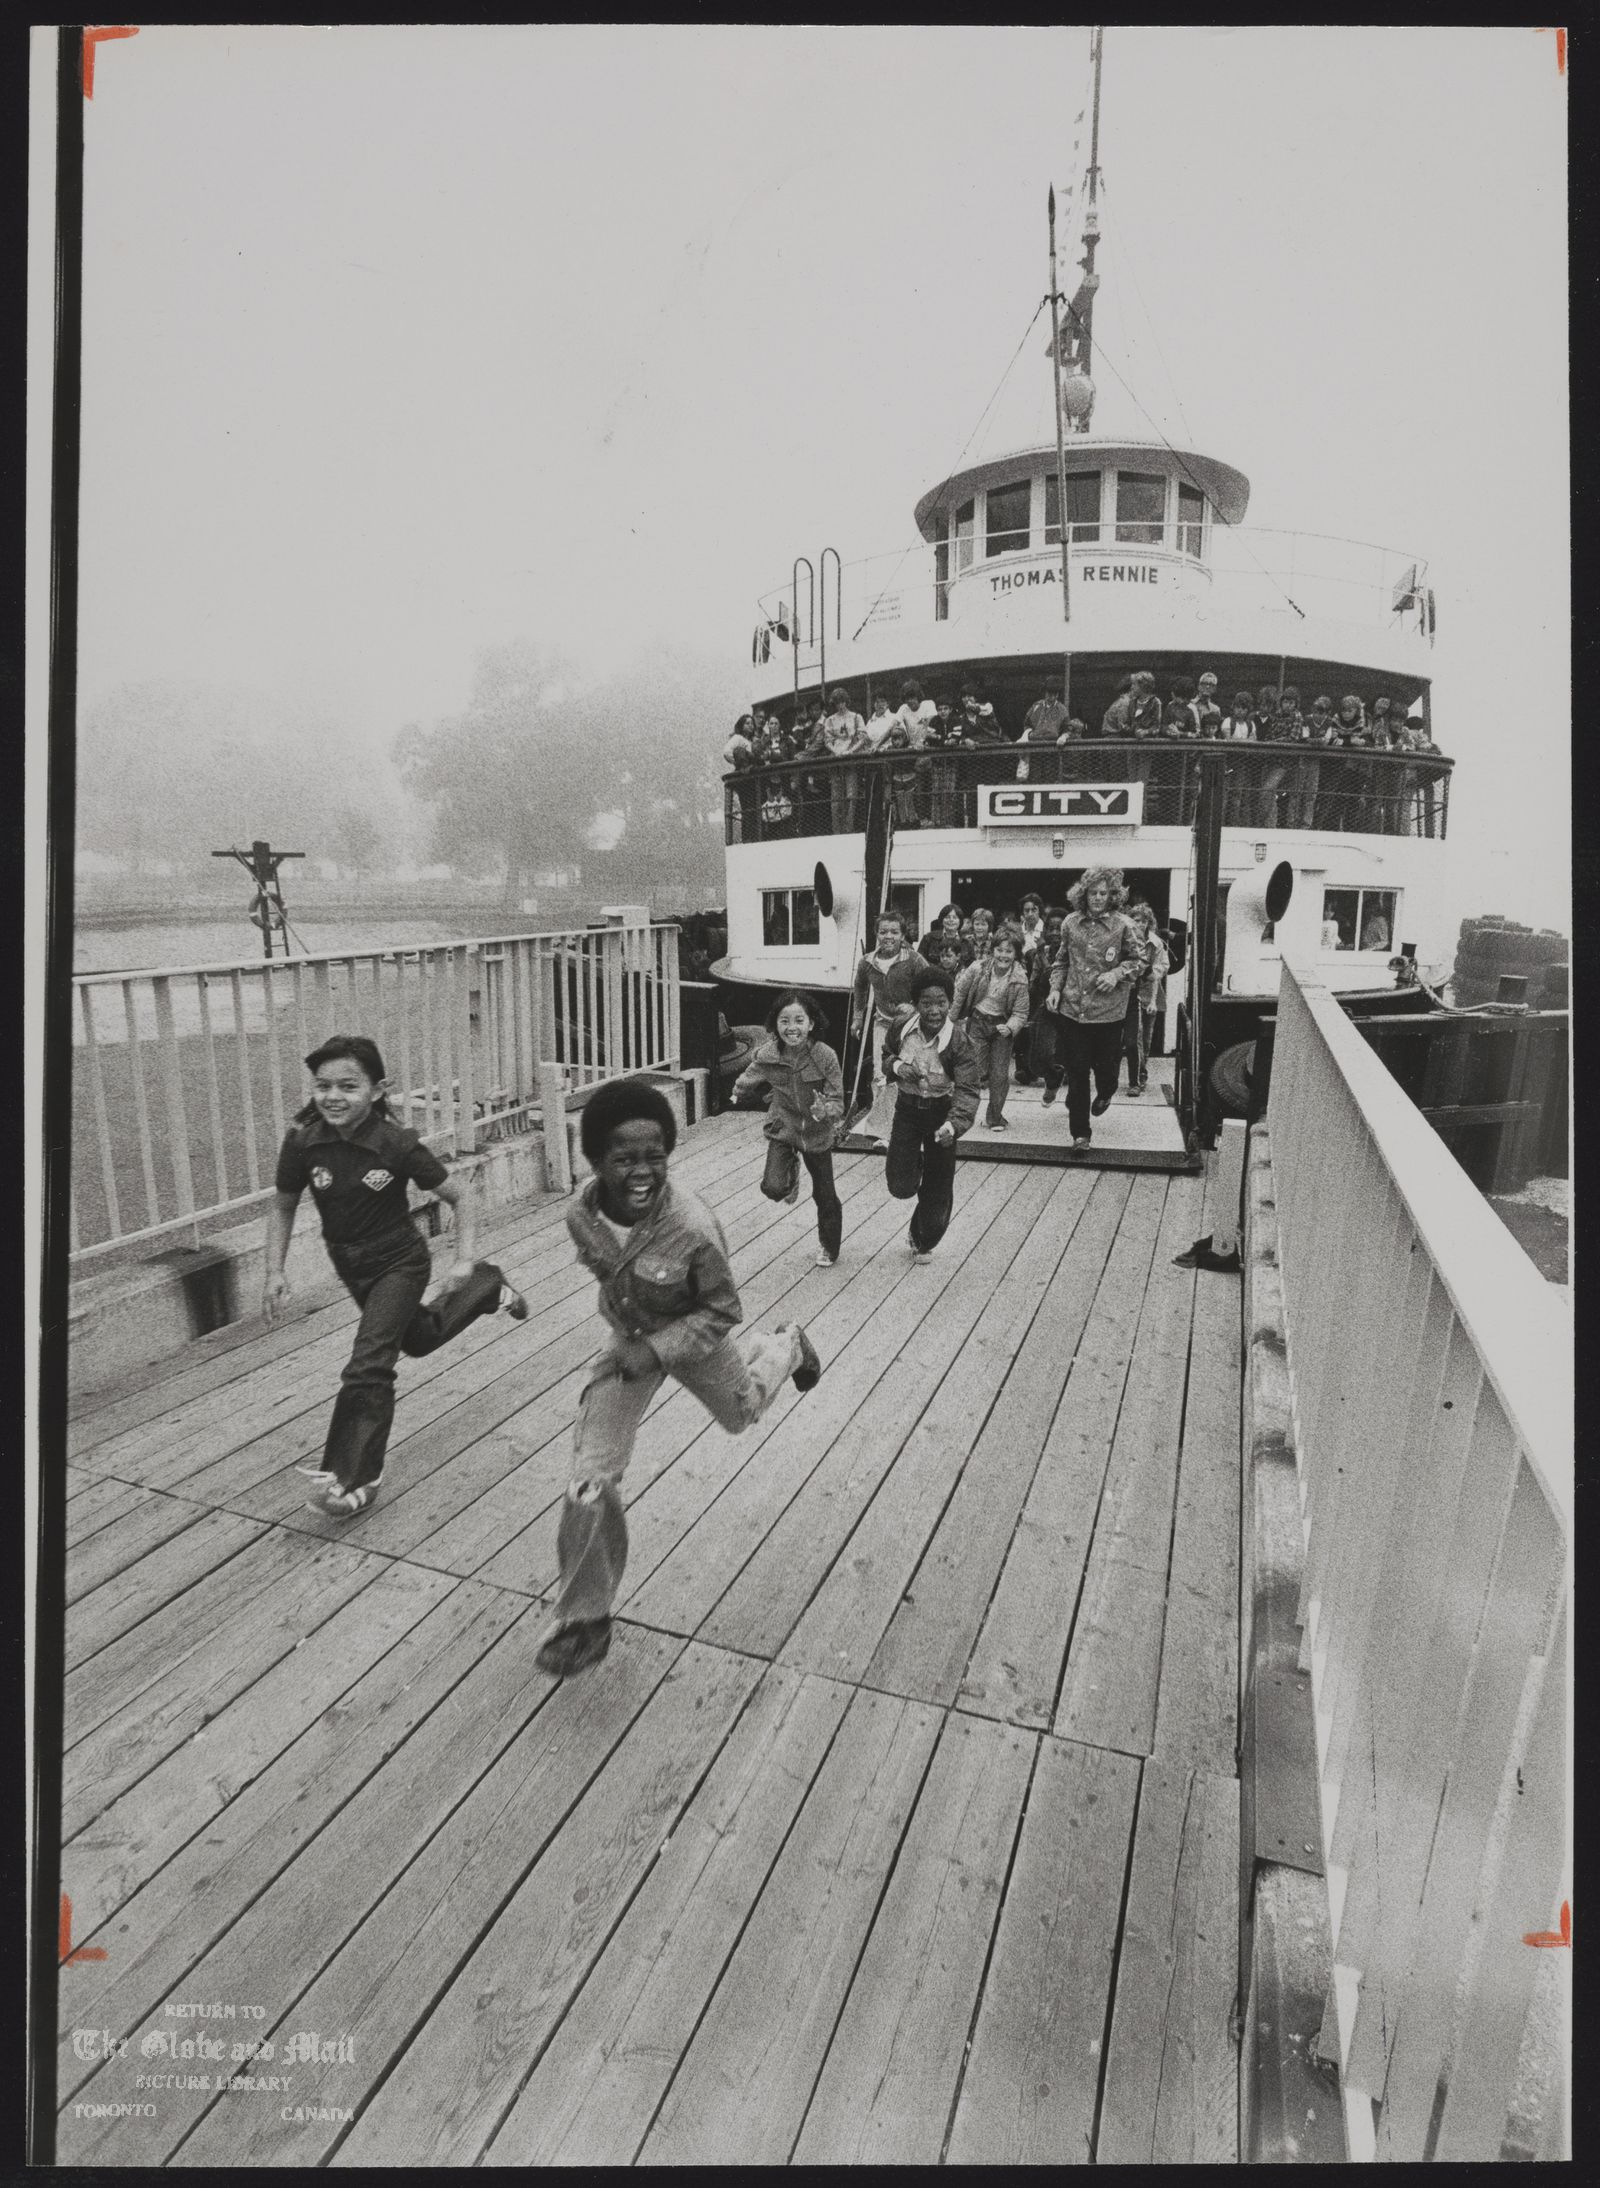 CENTRE ISLAND [Children run as they exit ferry on their arrival at Centre Island, June 28, 1978]